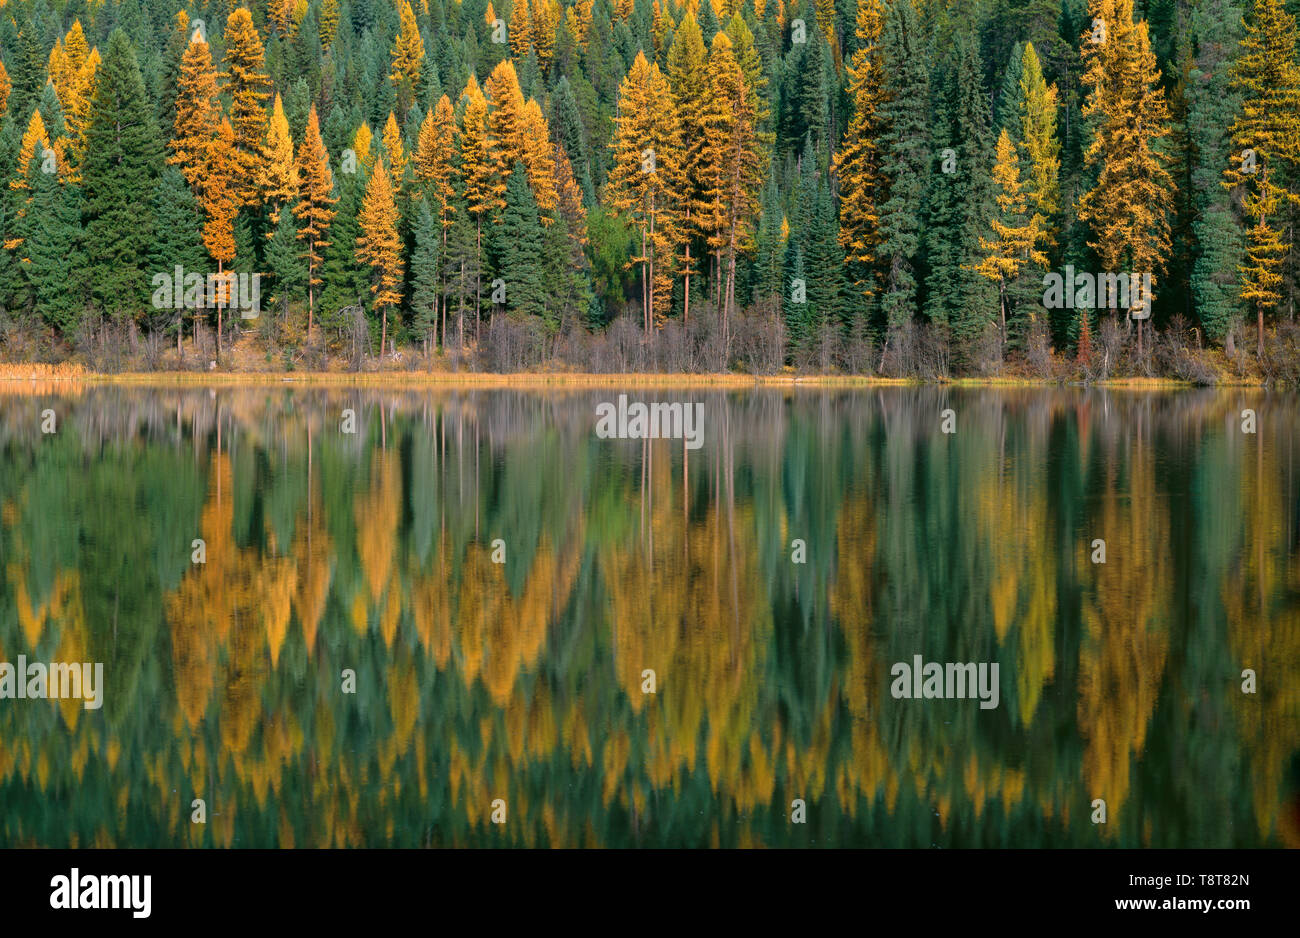 USA, Washington, Colville National Forest, Autumn colored western larch trees and evergreen conifers reflect in small lake. - Stock Image